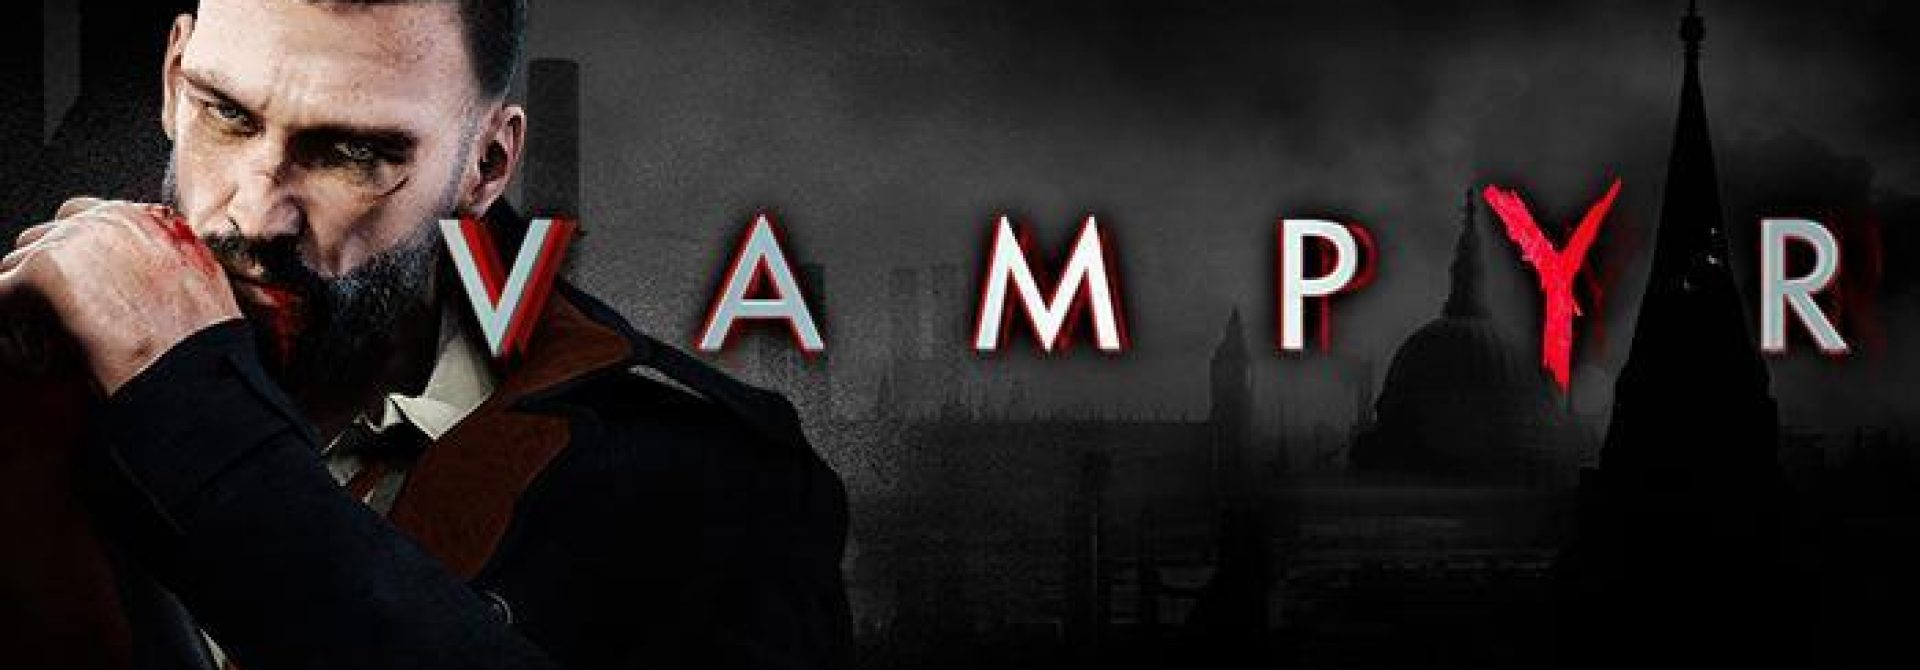 Behind The Scenes Of Dontnod's New Game Vampyr